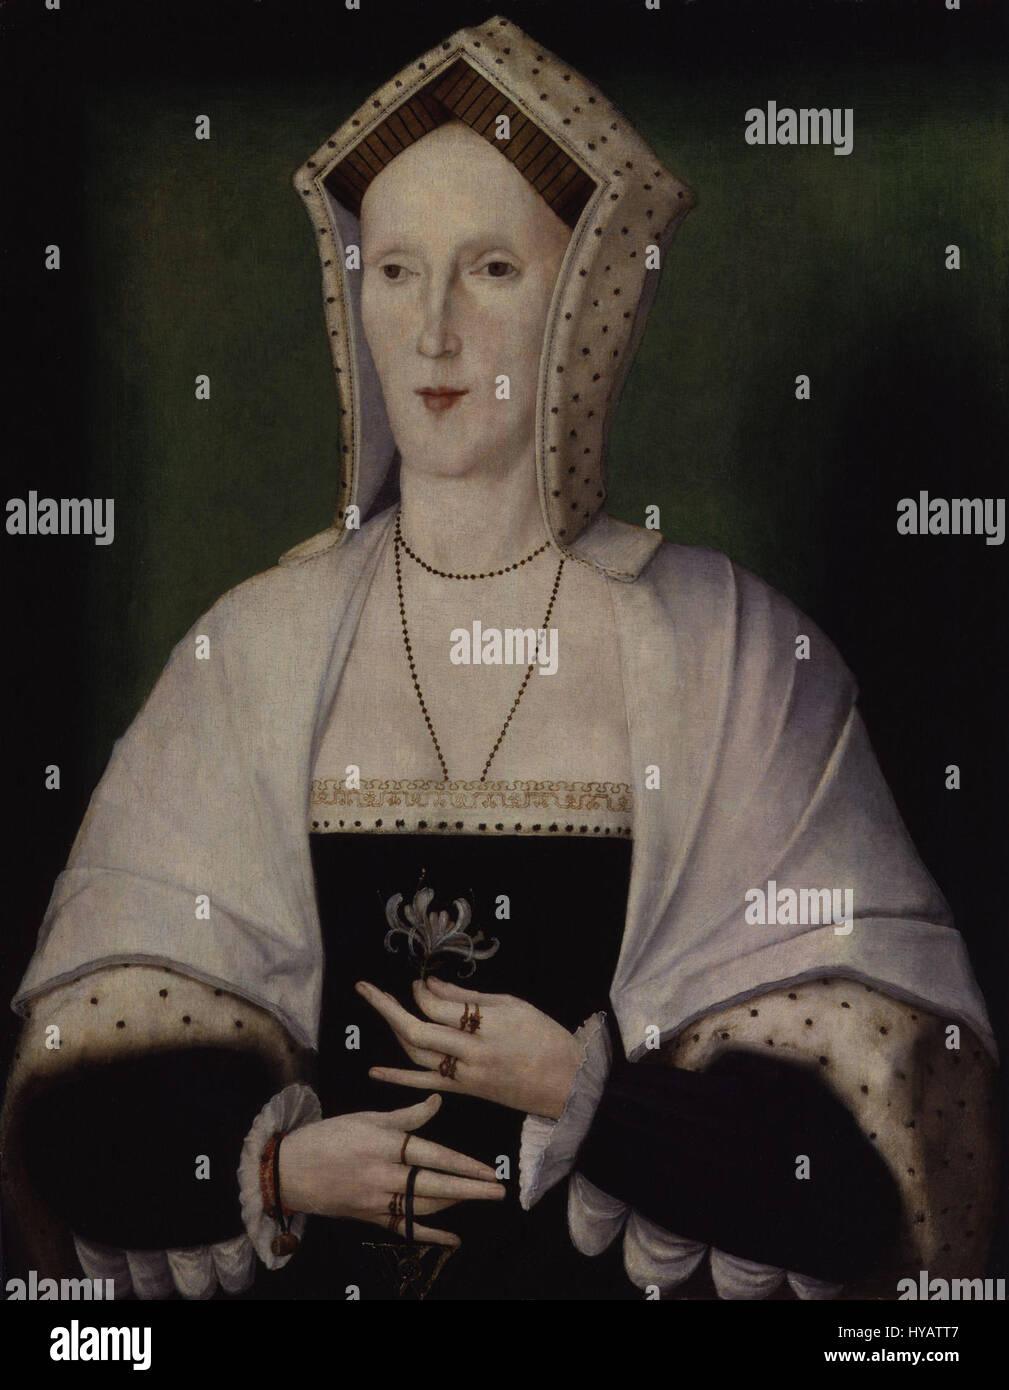 Unknown woman, formerly known as Margaret Pole, Countess of Salisbury from NPG Stock Photo